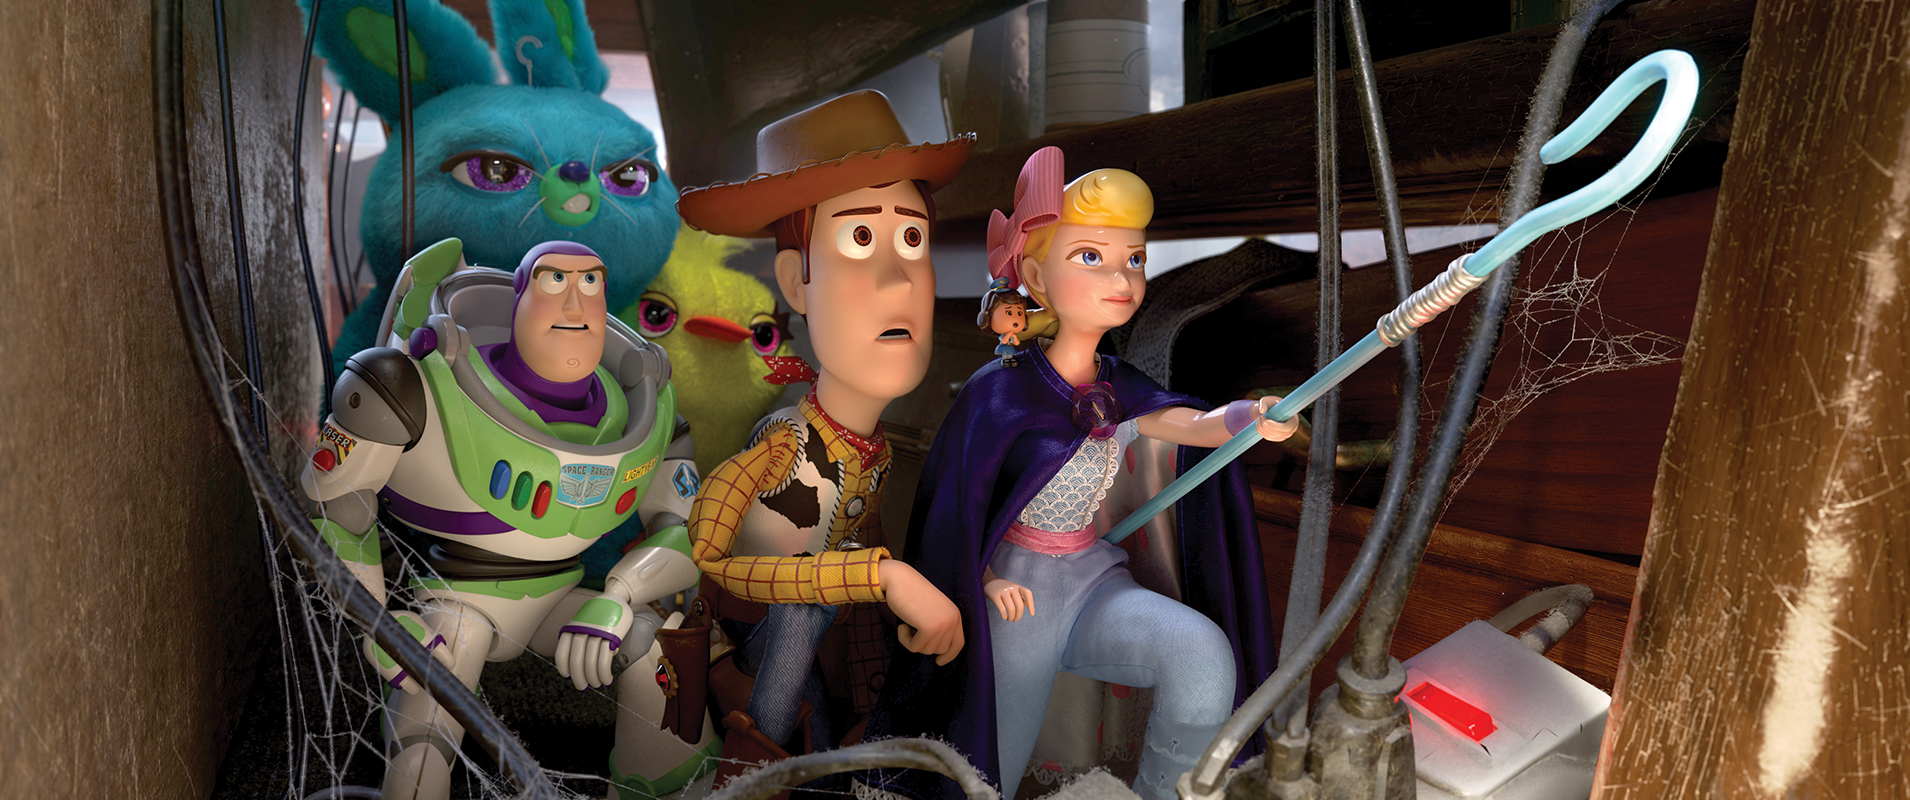 Toy Story 4 Review: Existential Excellence